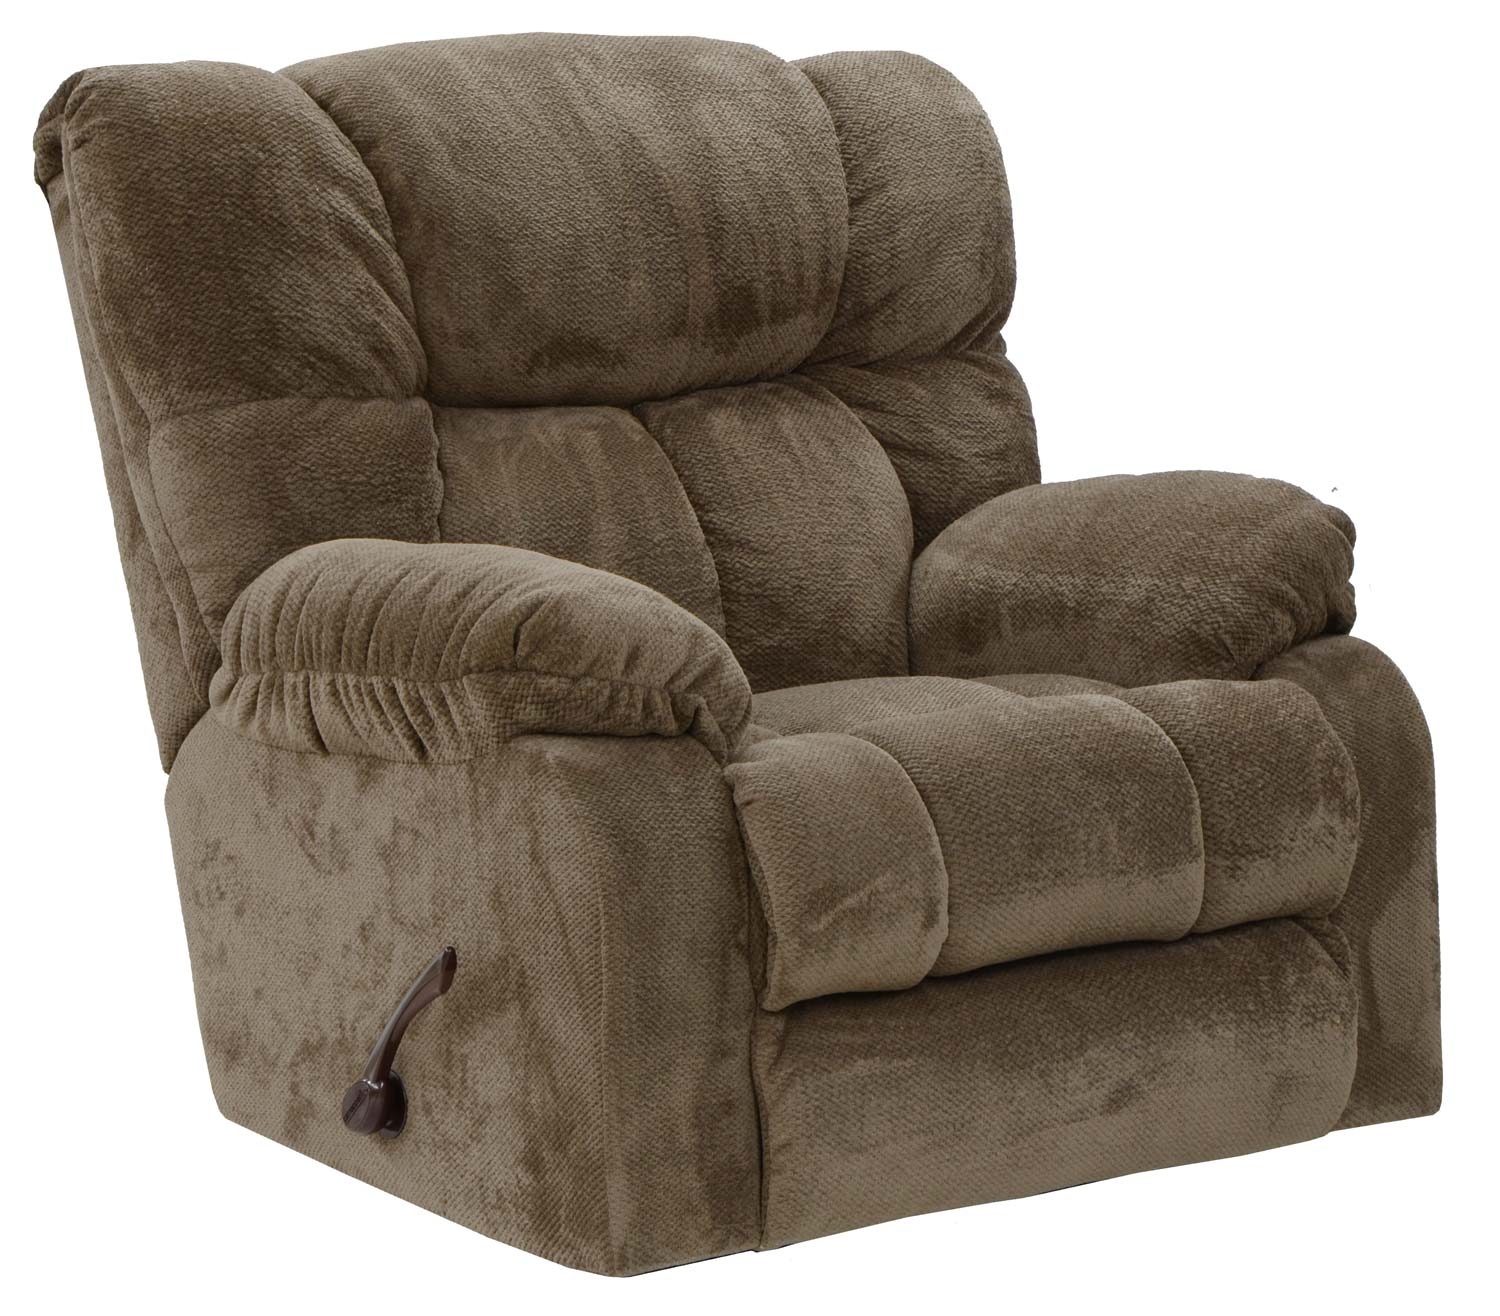 Catnapper popson x tra comfort chaise rocker recliner for Catnapper reclining chaise